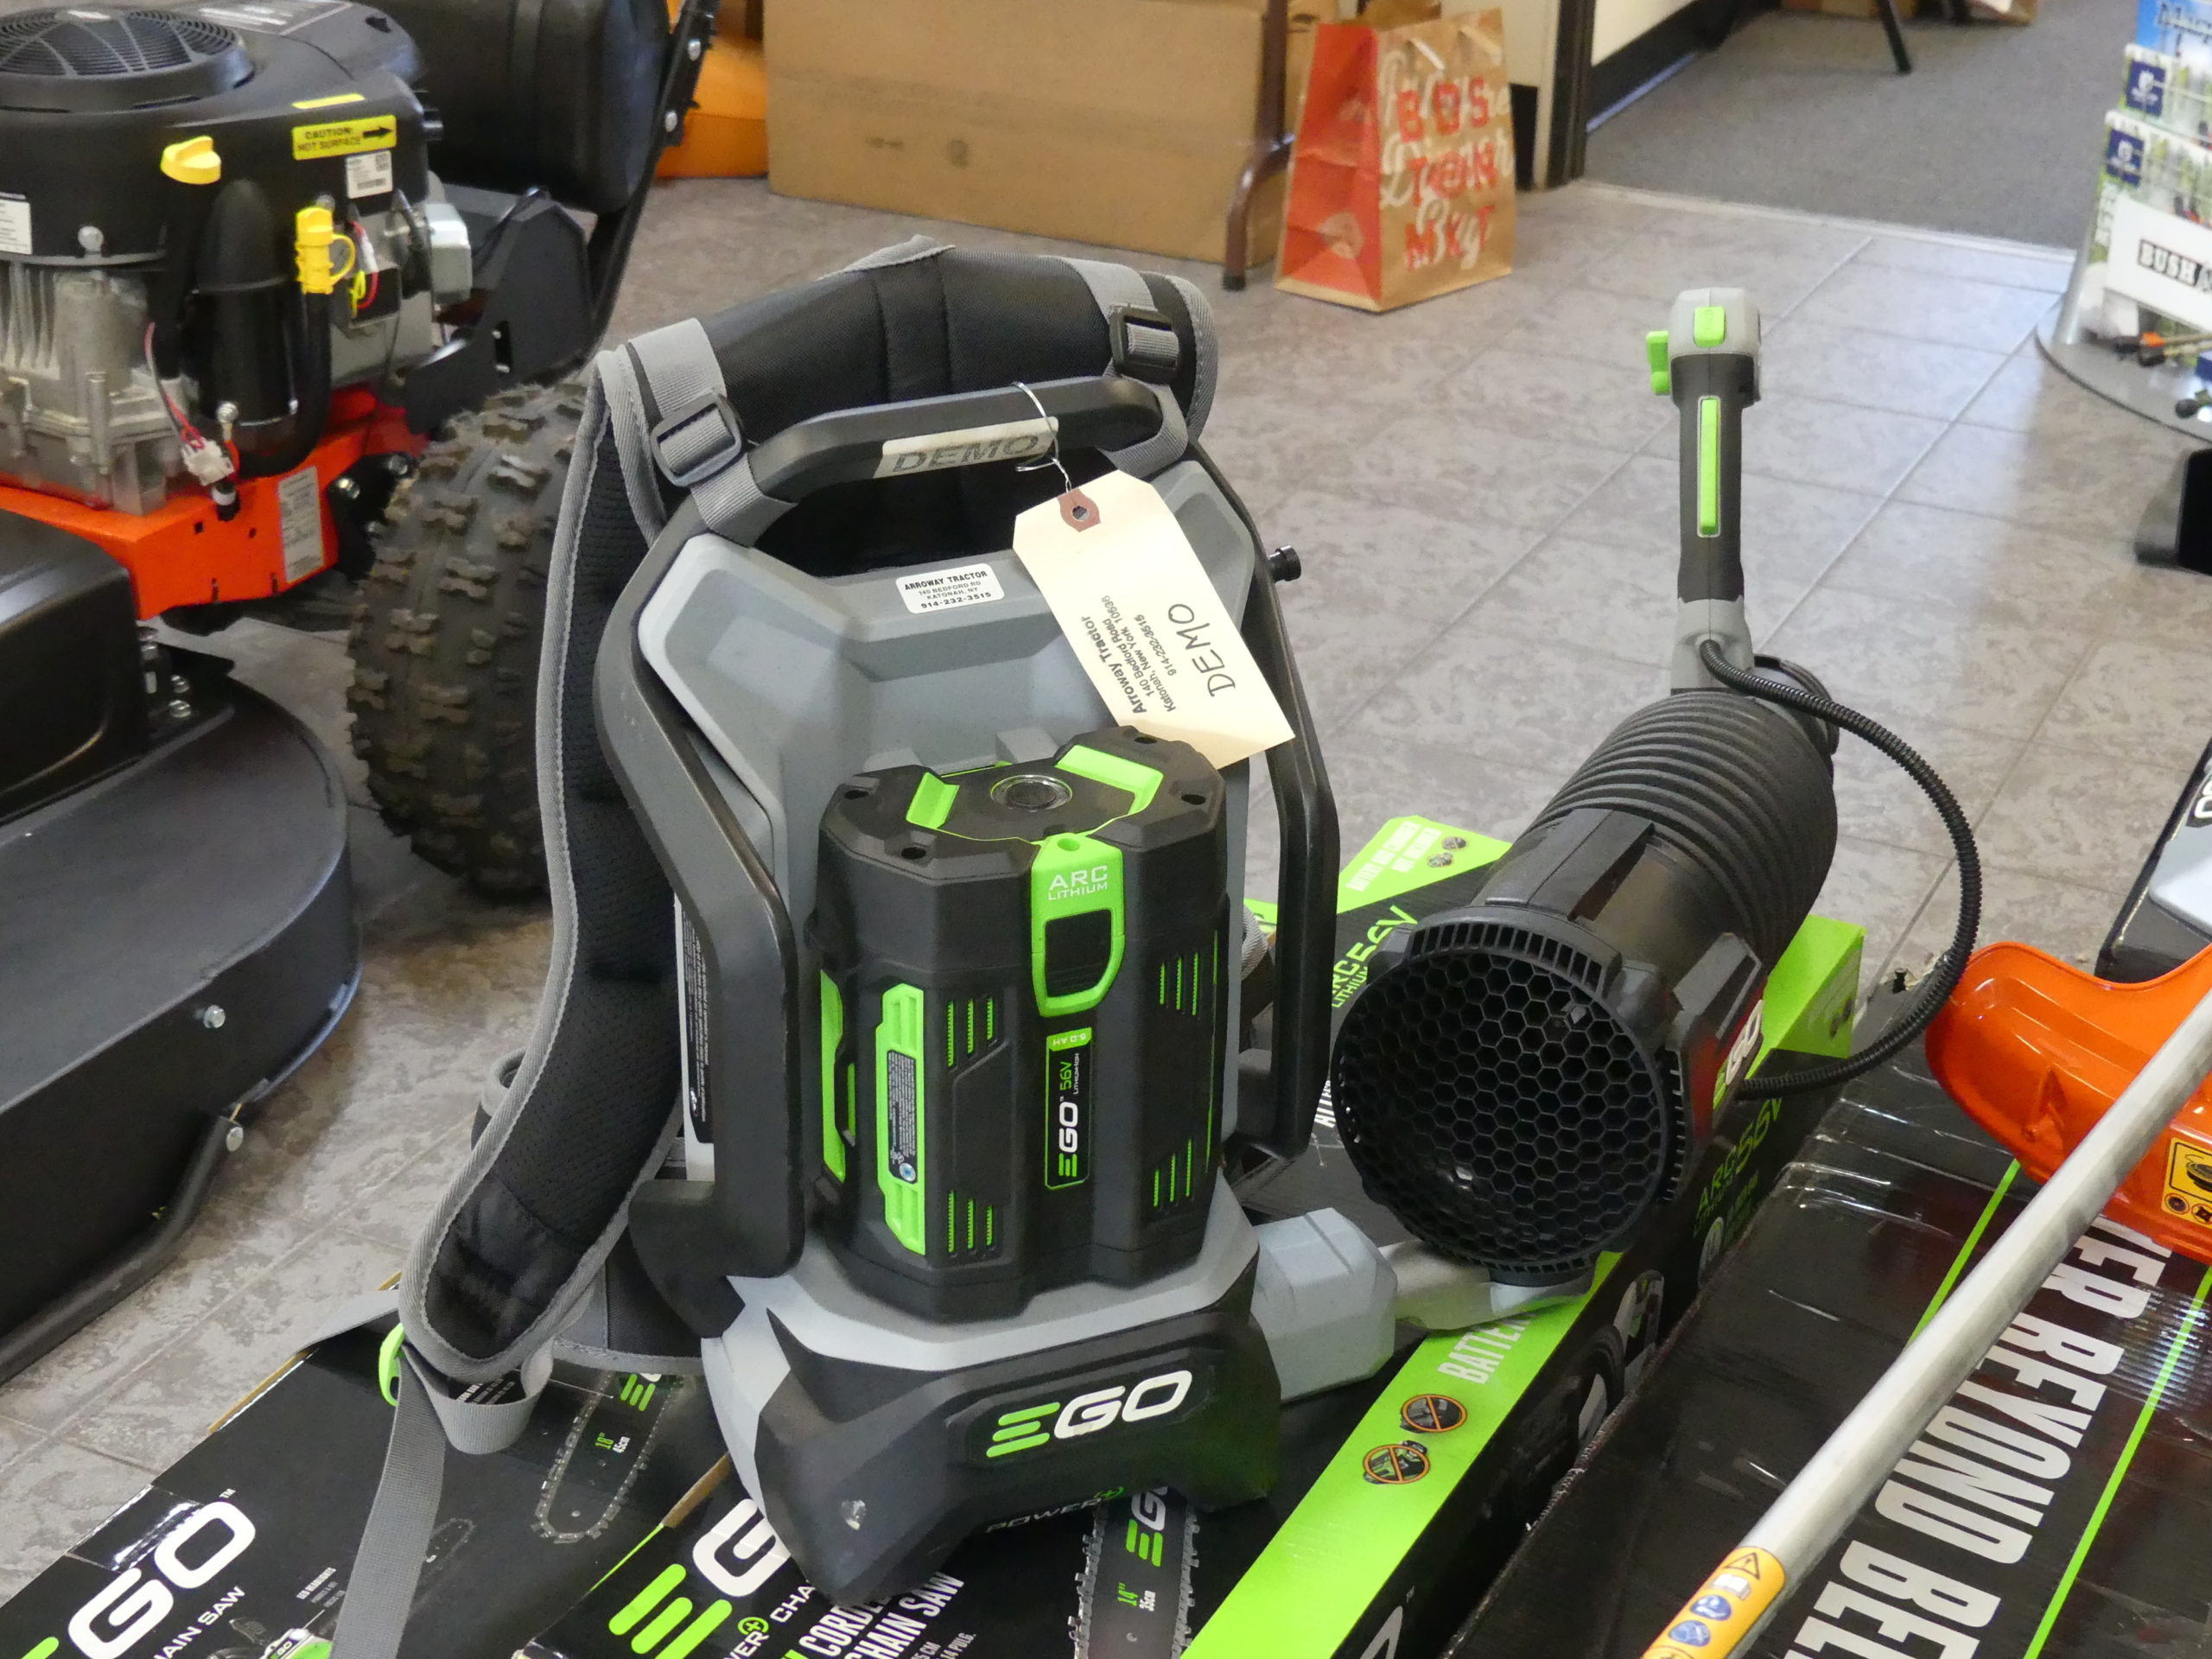 This Ego Power+ (about $400) battery-powered leaf blower may not make it for the pros, but for homeowners it's eight times quieter than a gas blower and only 12.5 pounds. The bad news is that on high power the battery only lasts about 25 minutes. That's plenty of time for many properties but for $120 you can get a second battery for 50 minutes of run time at high power.  No gas, no emissions. There are other more powerful electric commercial blowers. ANDREW MESSINGER